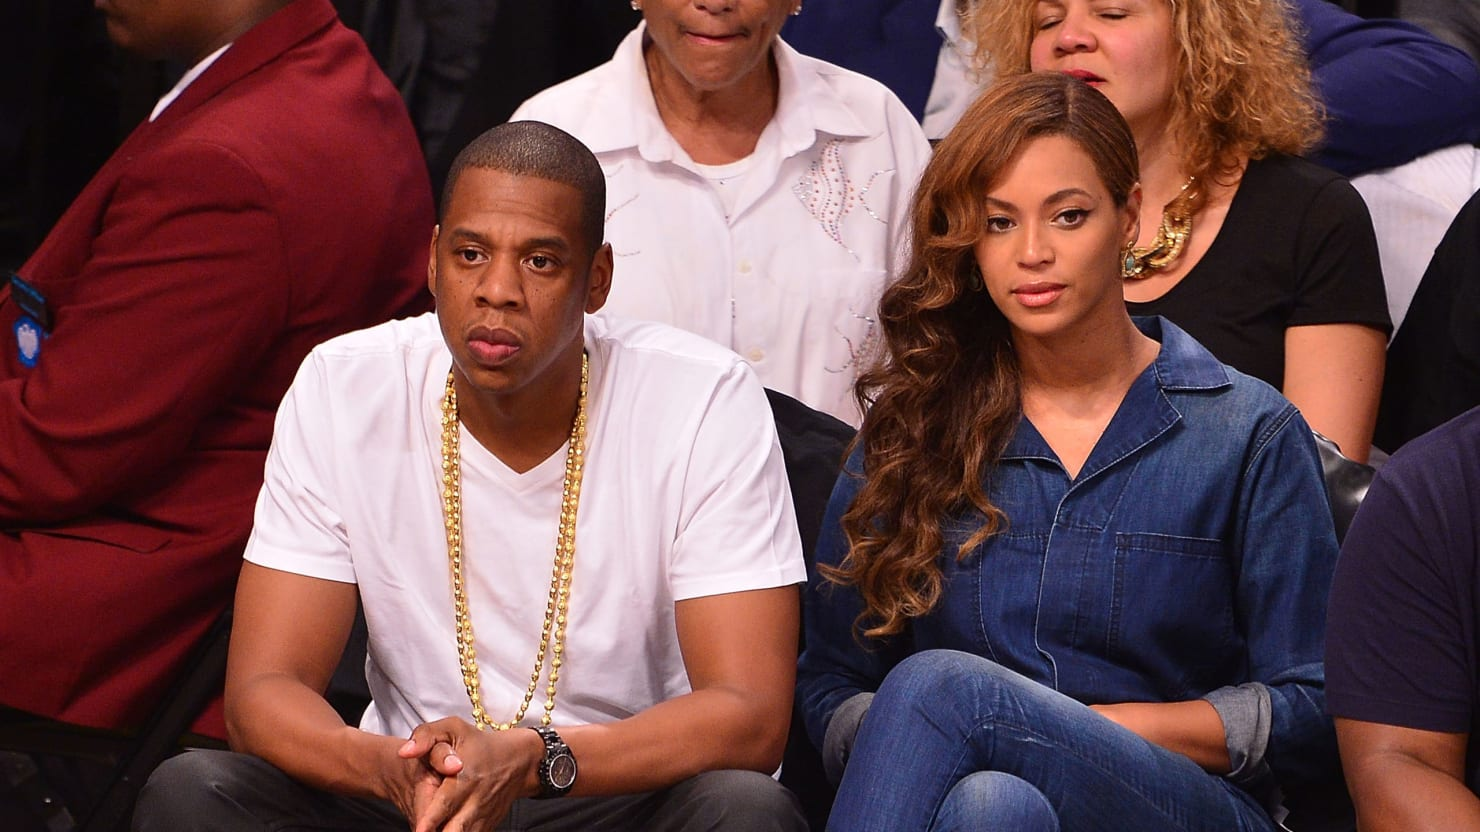 How many years are beyonce and jay z apart